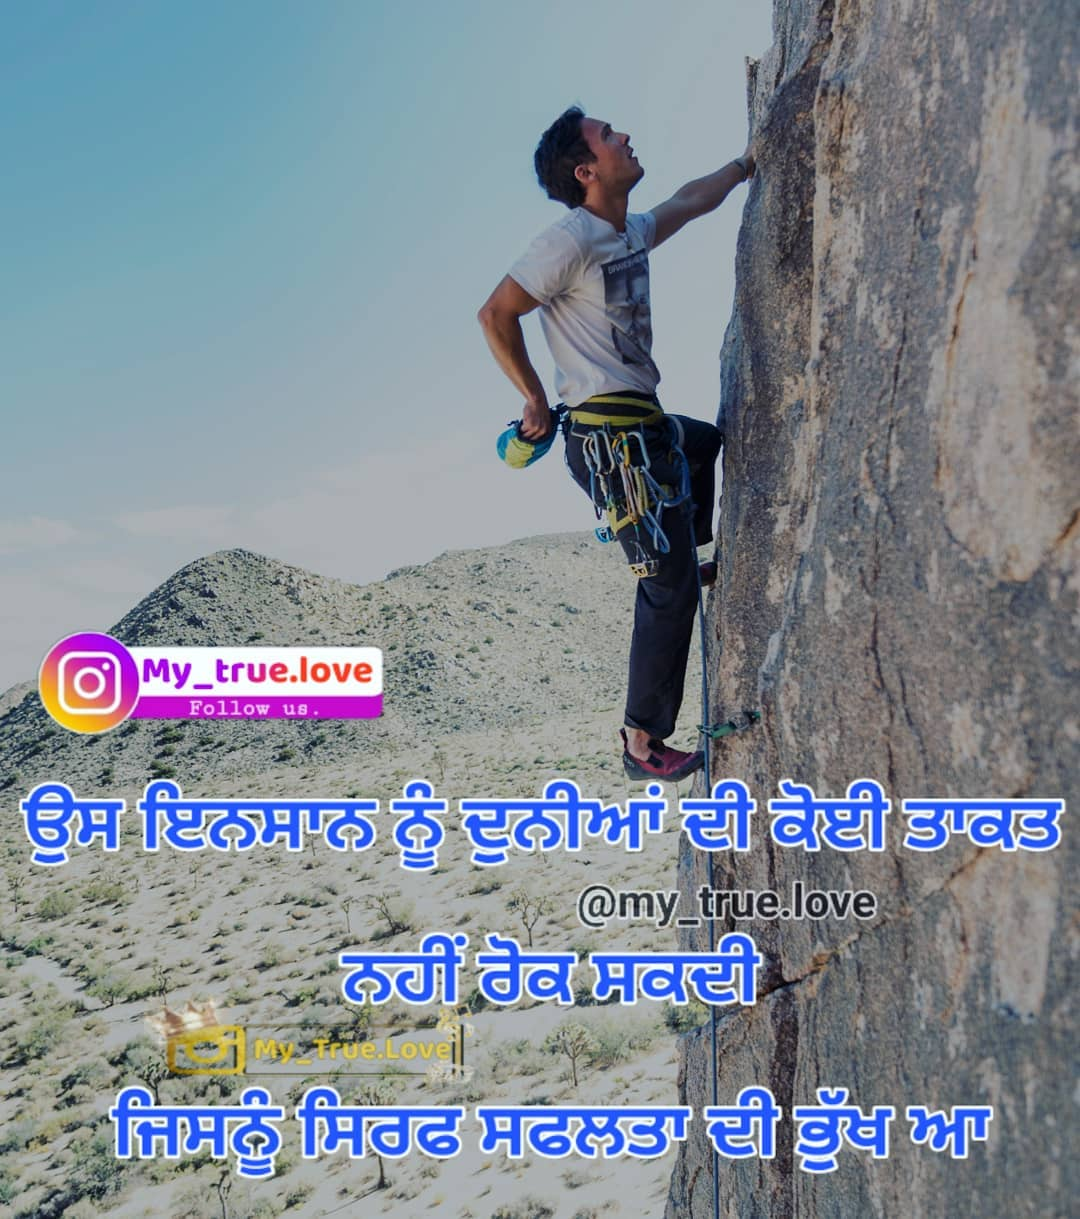 ❤️Like 💬 Comments➡️Share👉 . Posts ਚੰਗੀ My True - Death Quotes